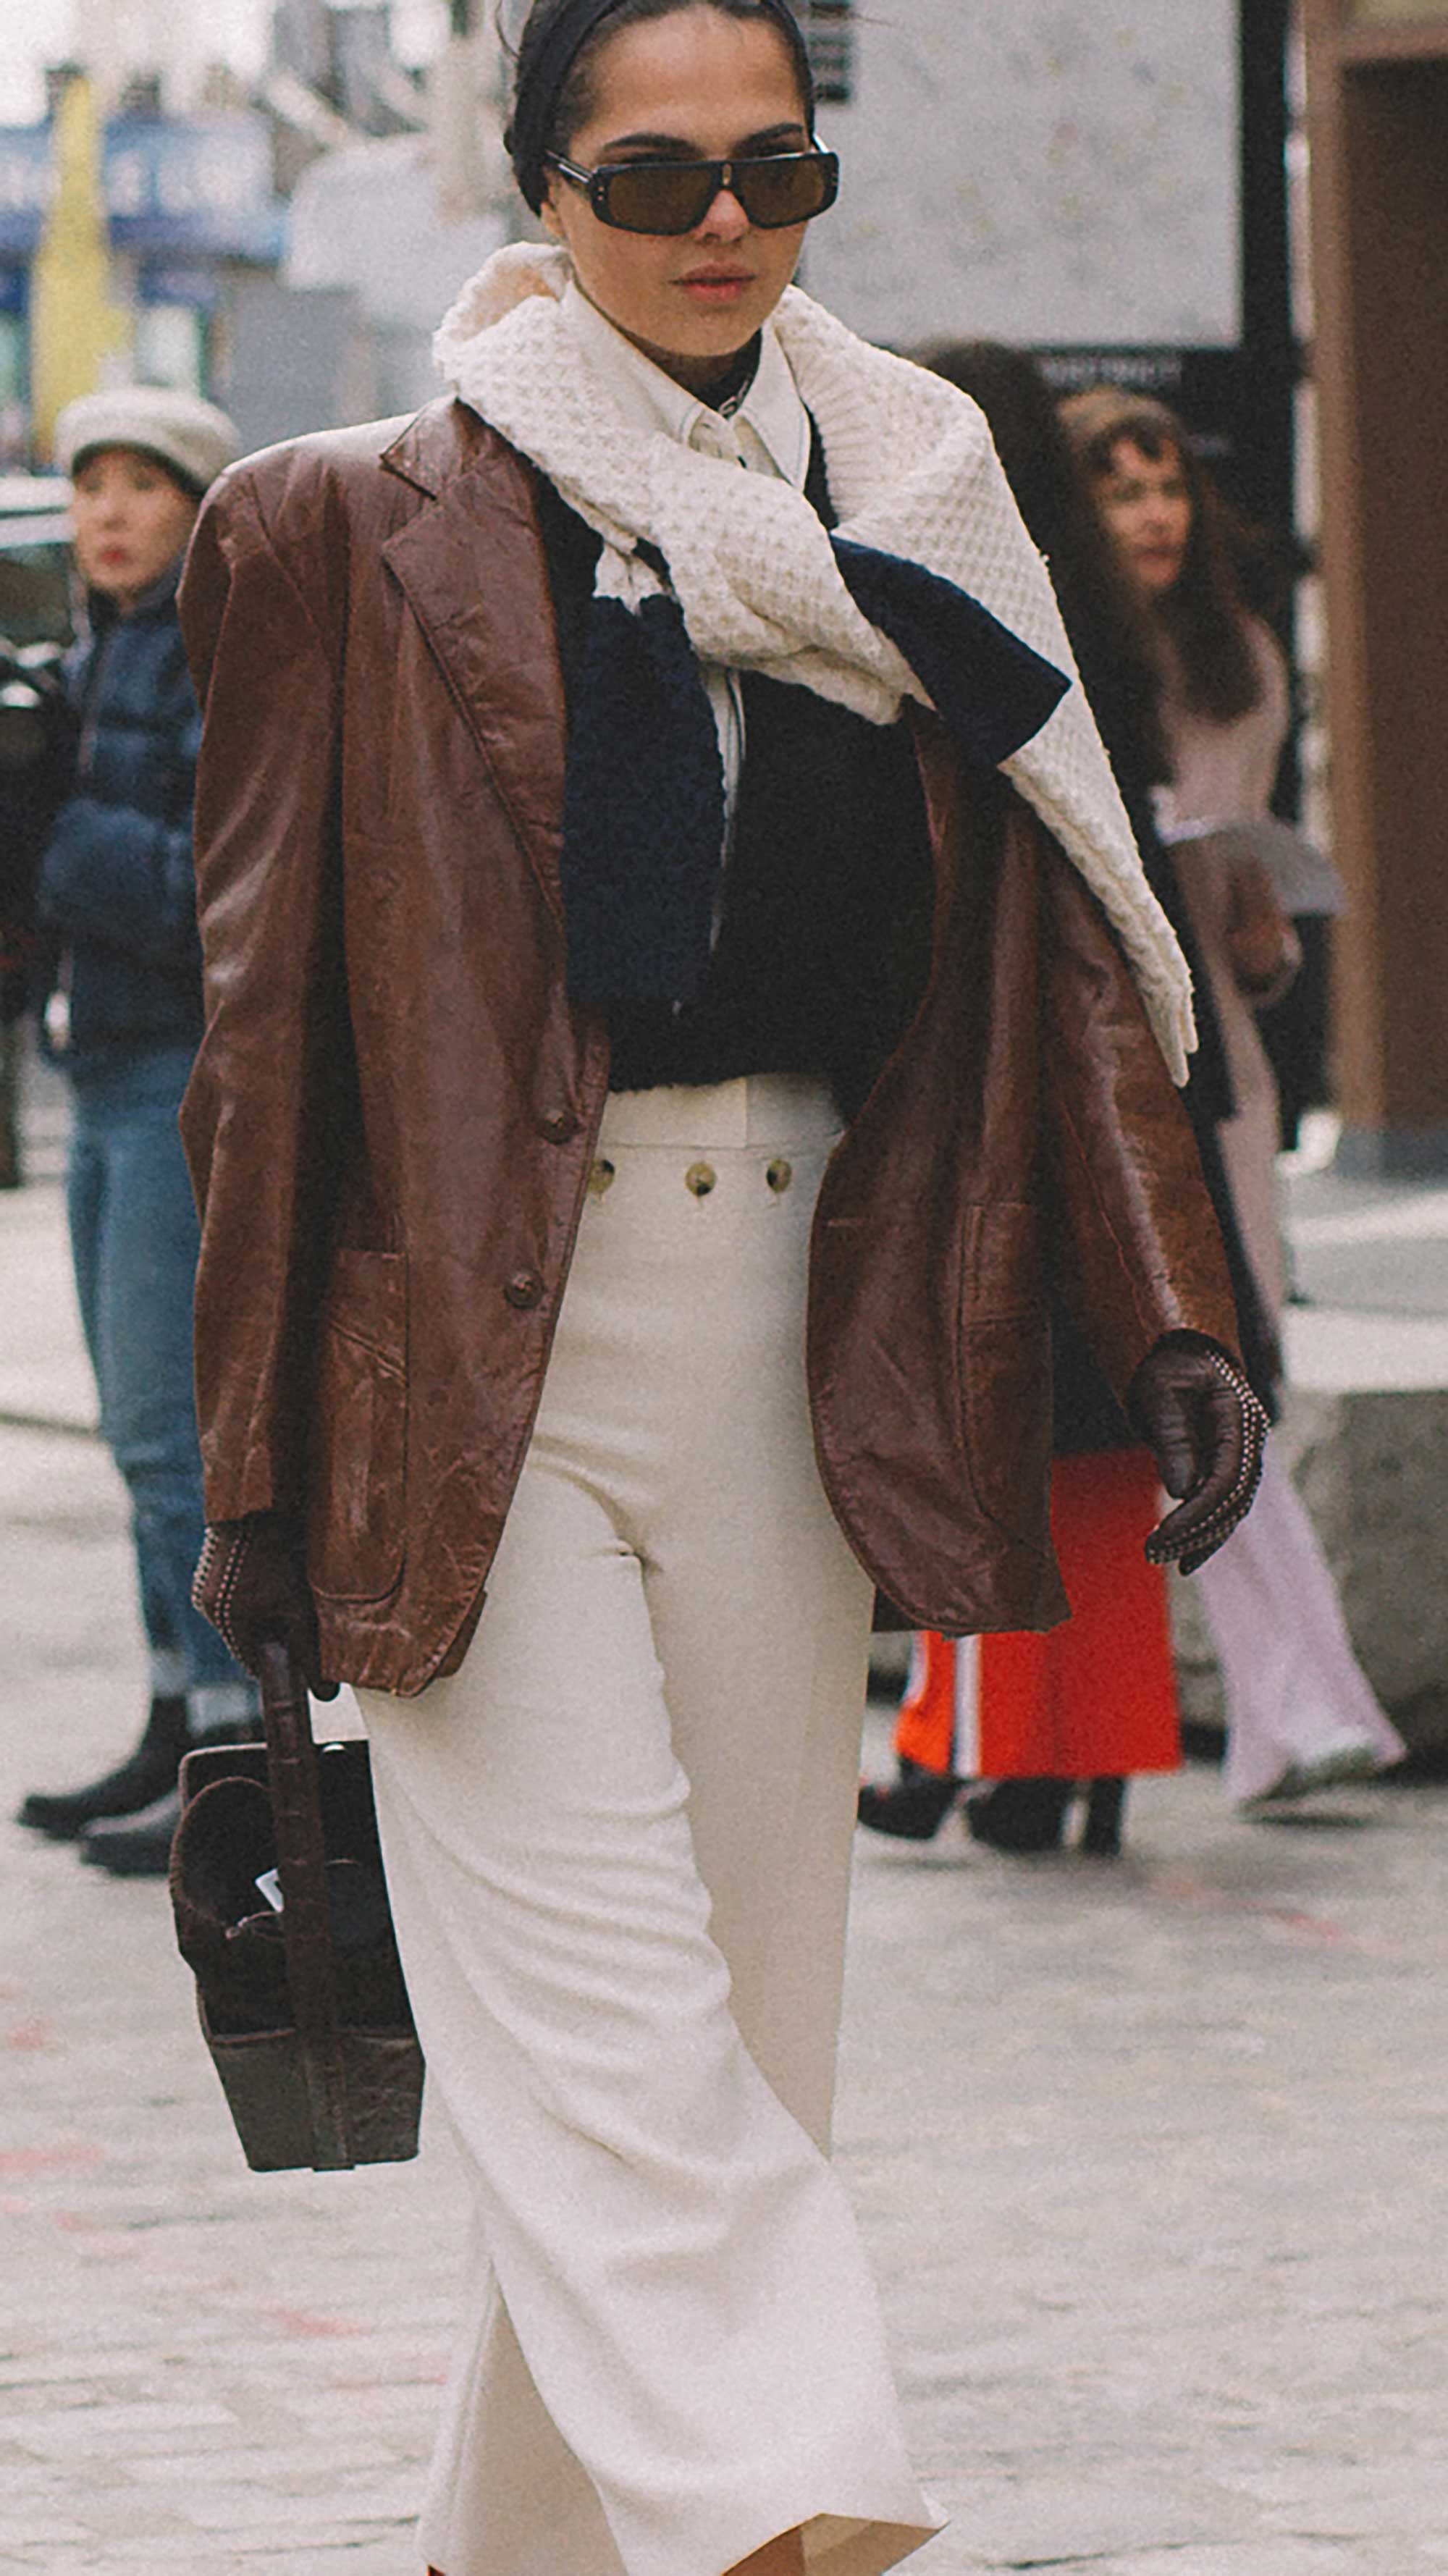 Best outfits of New York Fashion Week street style day four NYFW FW19 - 51.jpg